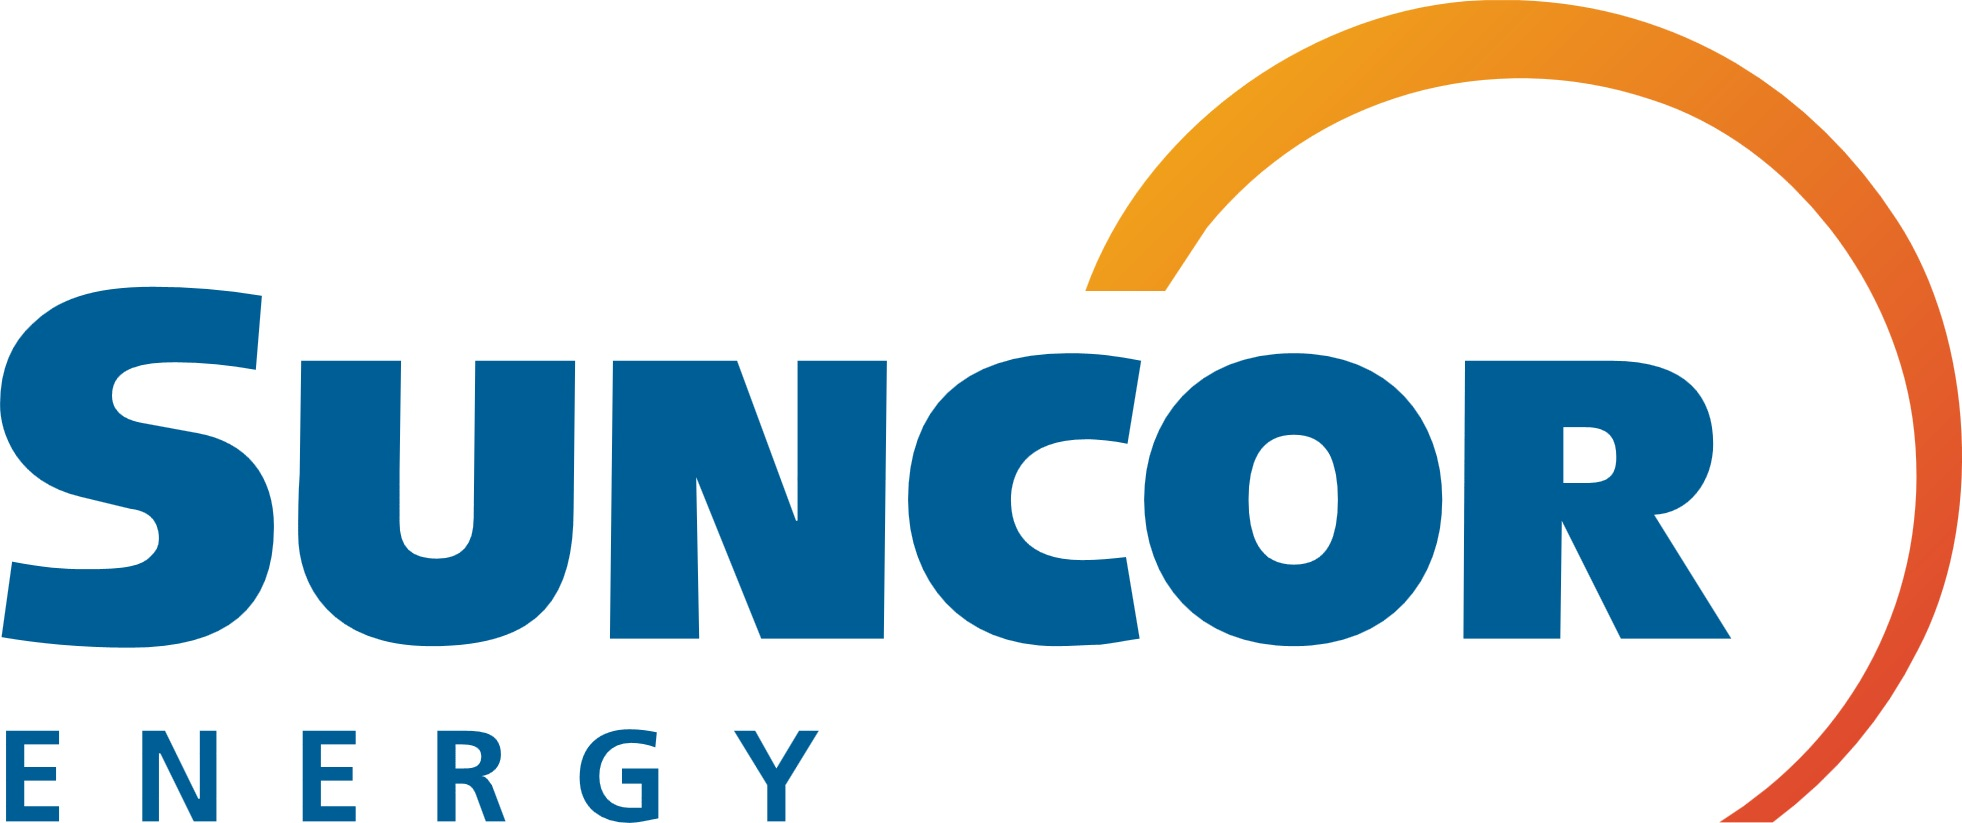 Suncor_Energy